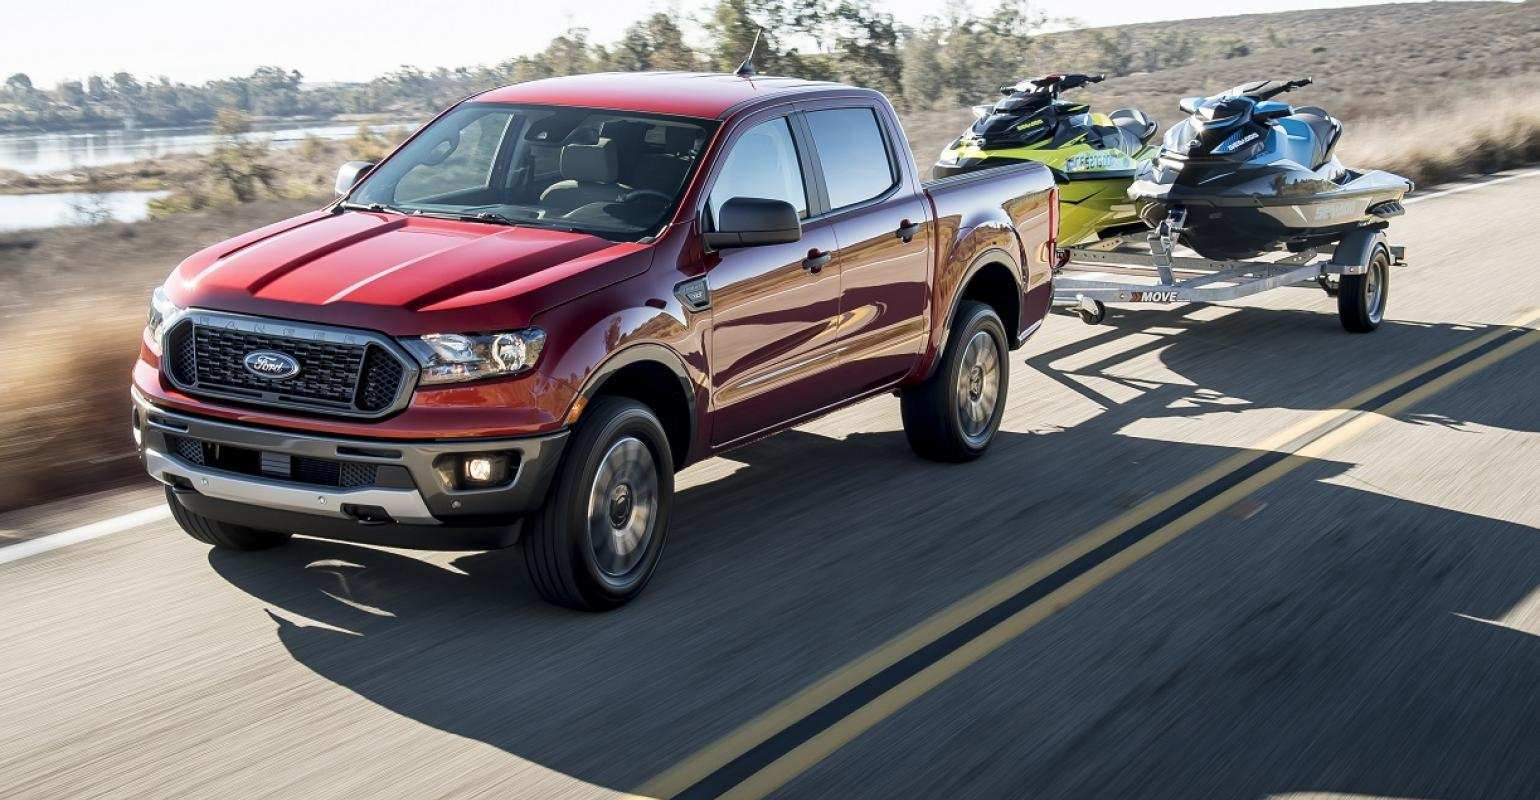 27 Best 2019 Ford Ranger 2 Door Engine